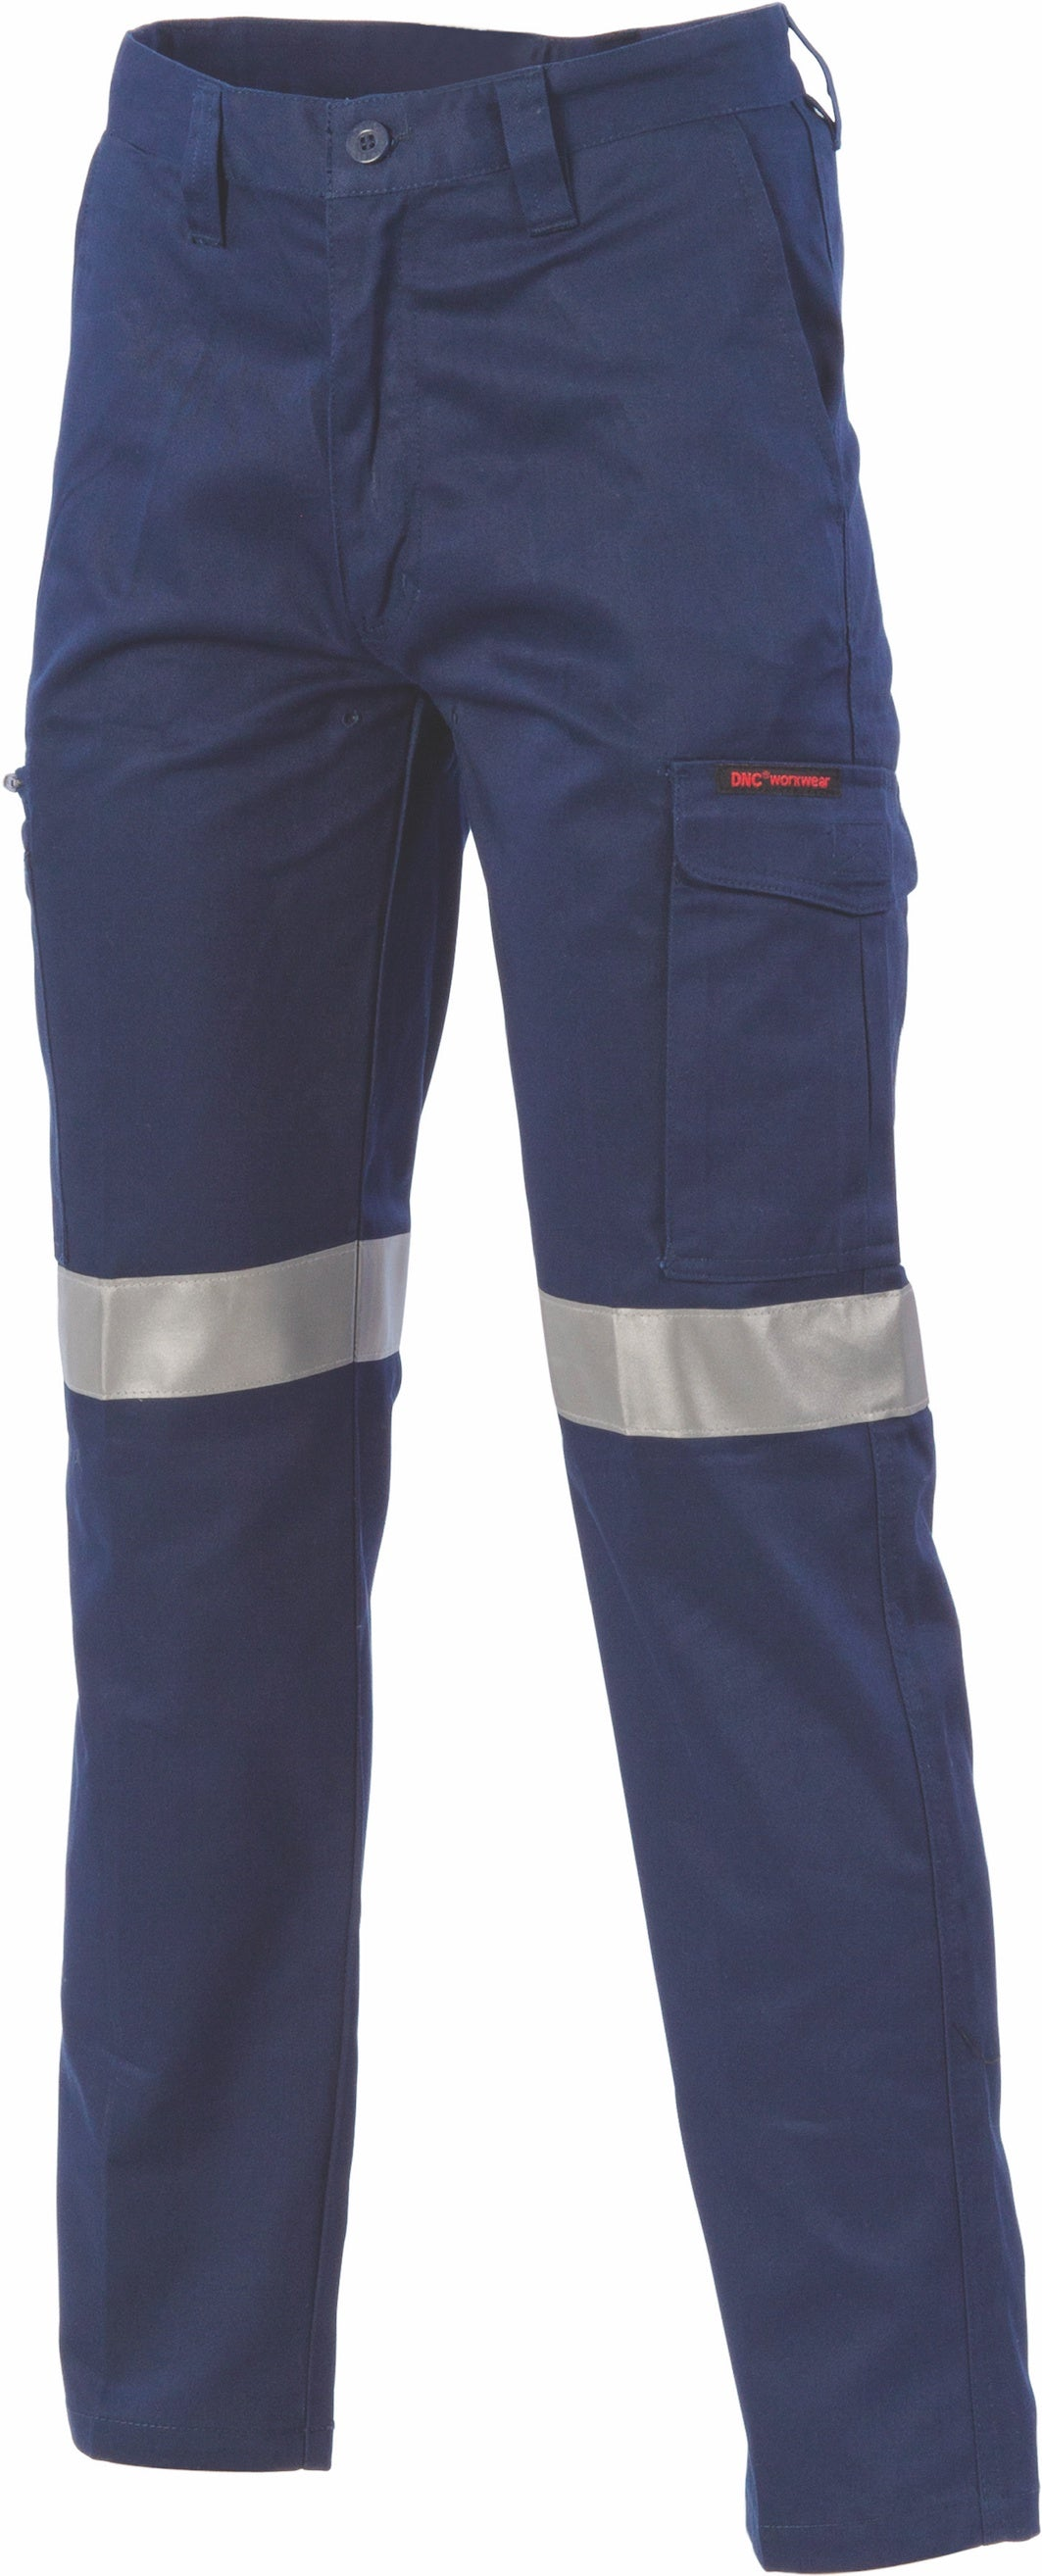 DNC - 3353 Digga Cool Breeze Cargo Navy Taped Pants